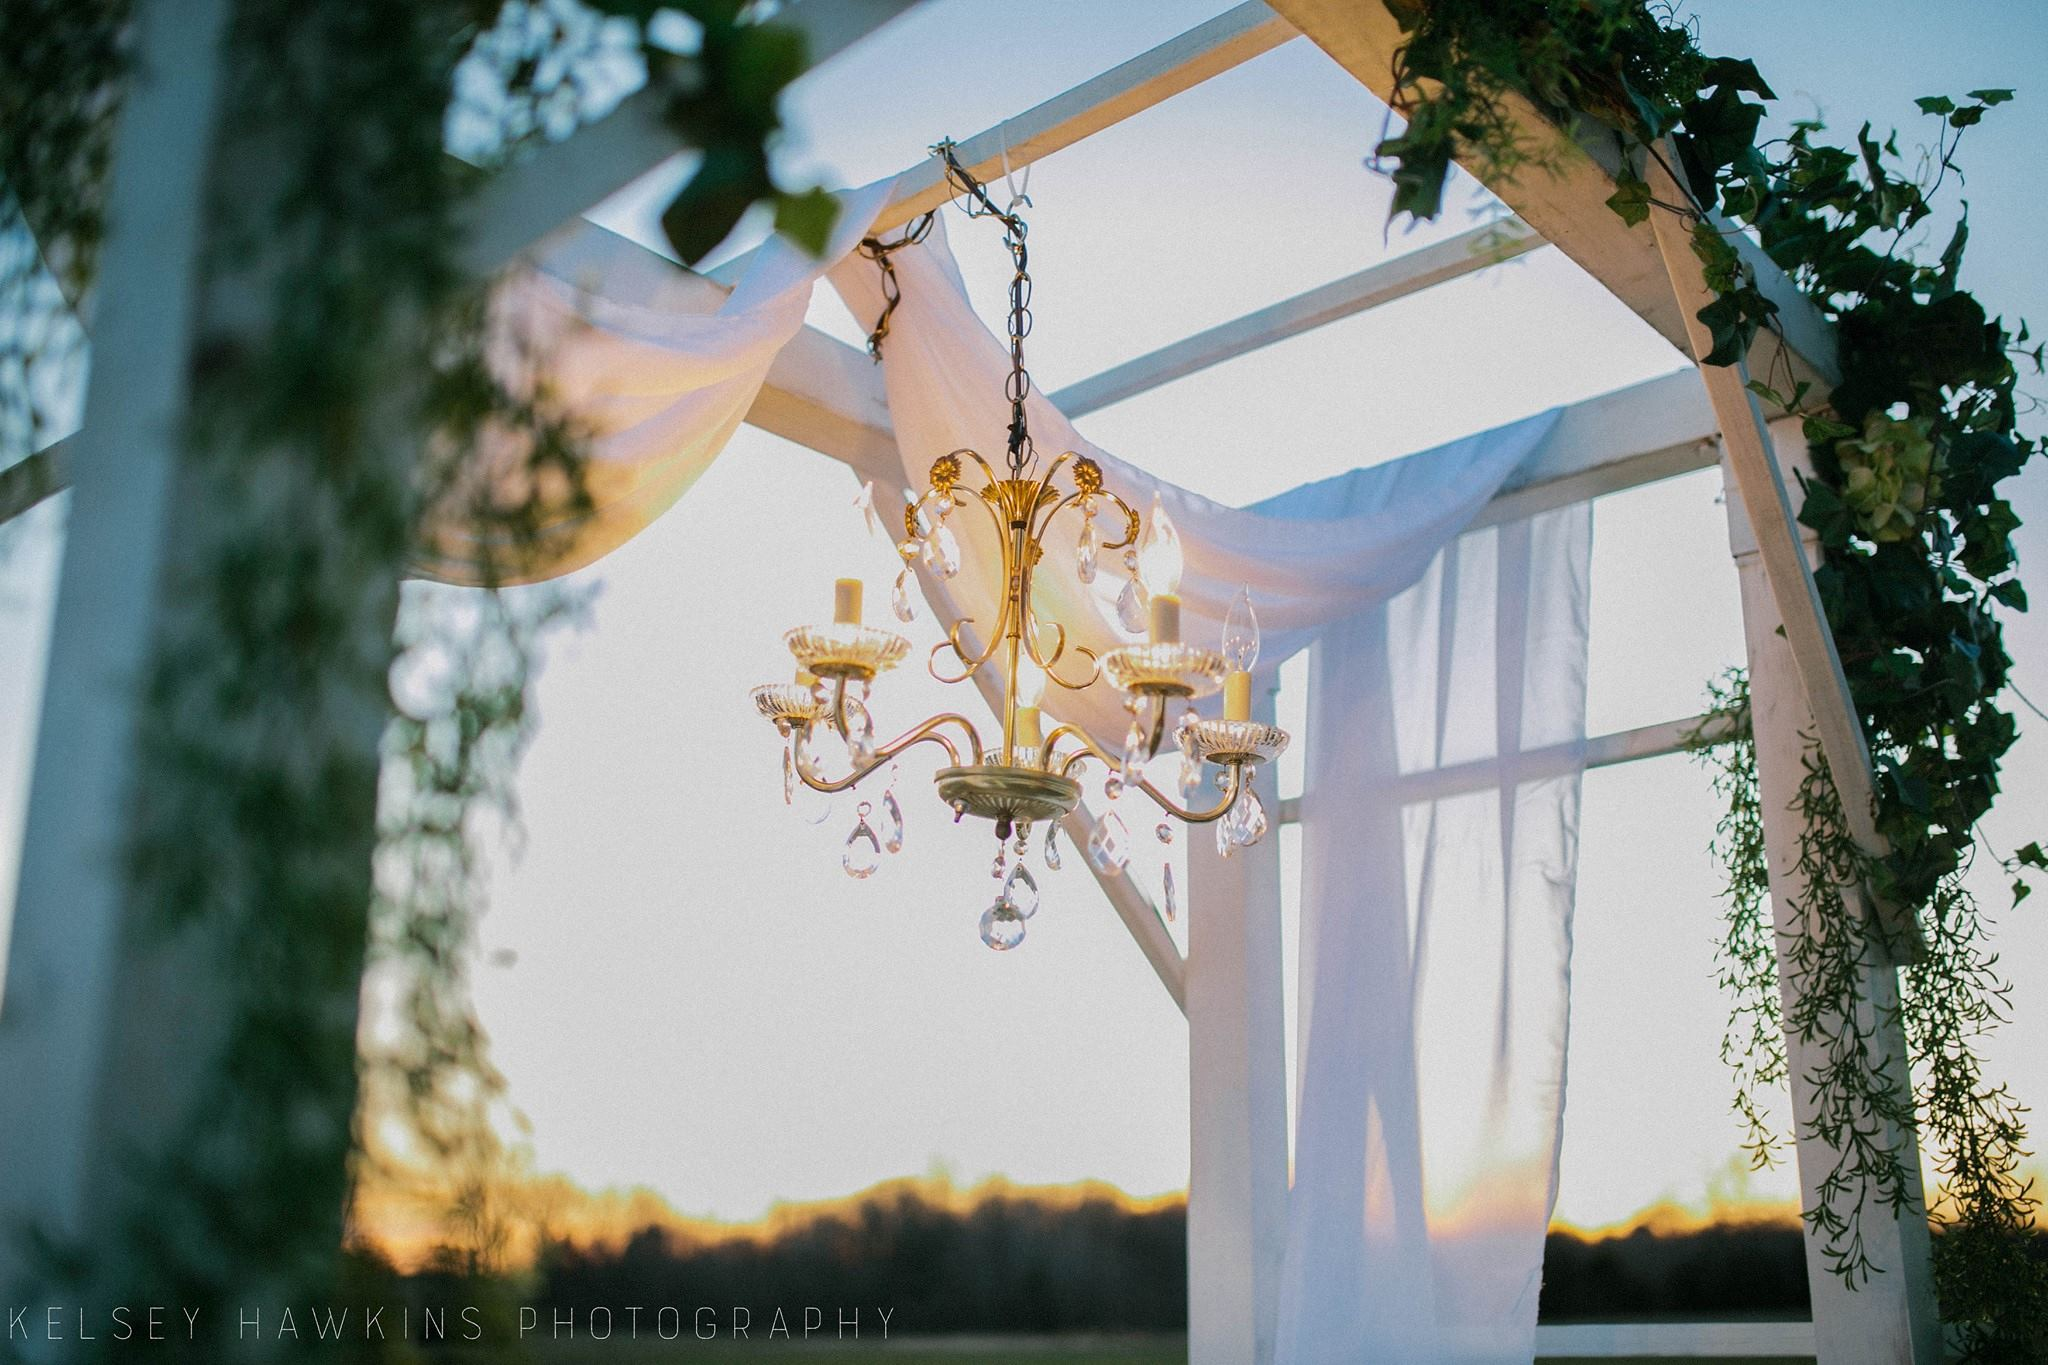 Blessing Barn Wedding and Event Venue - 2